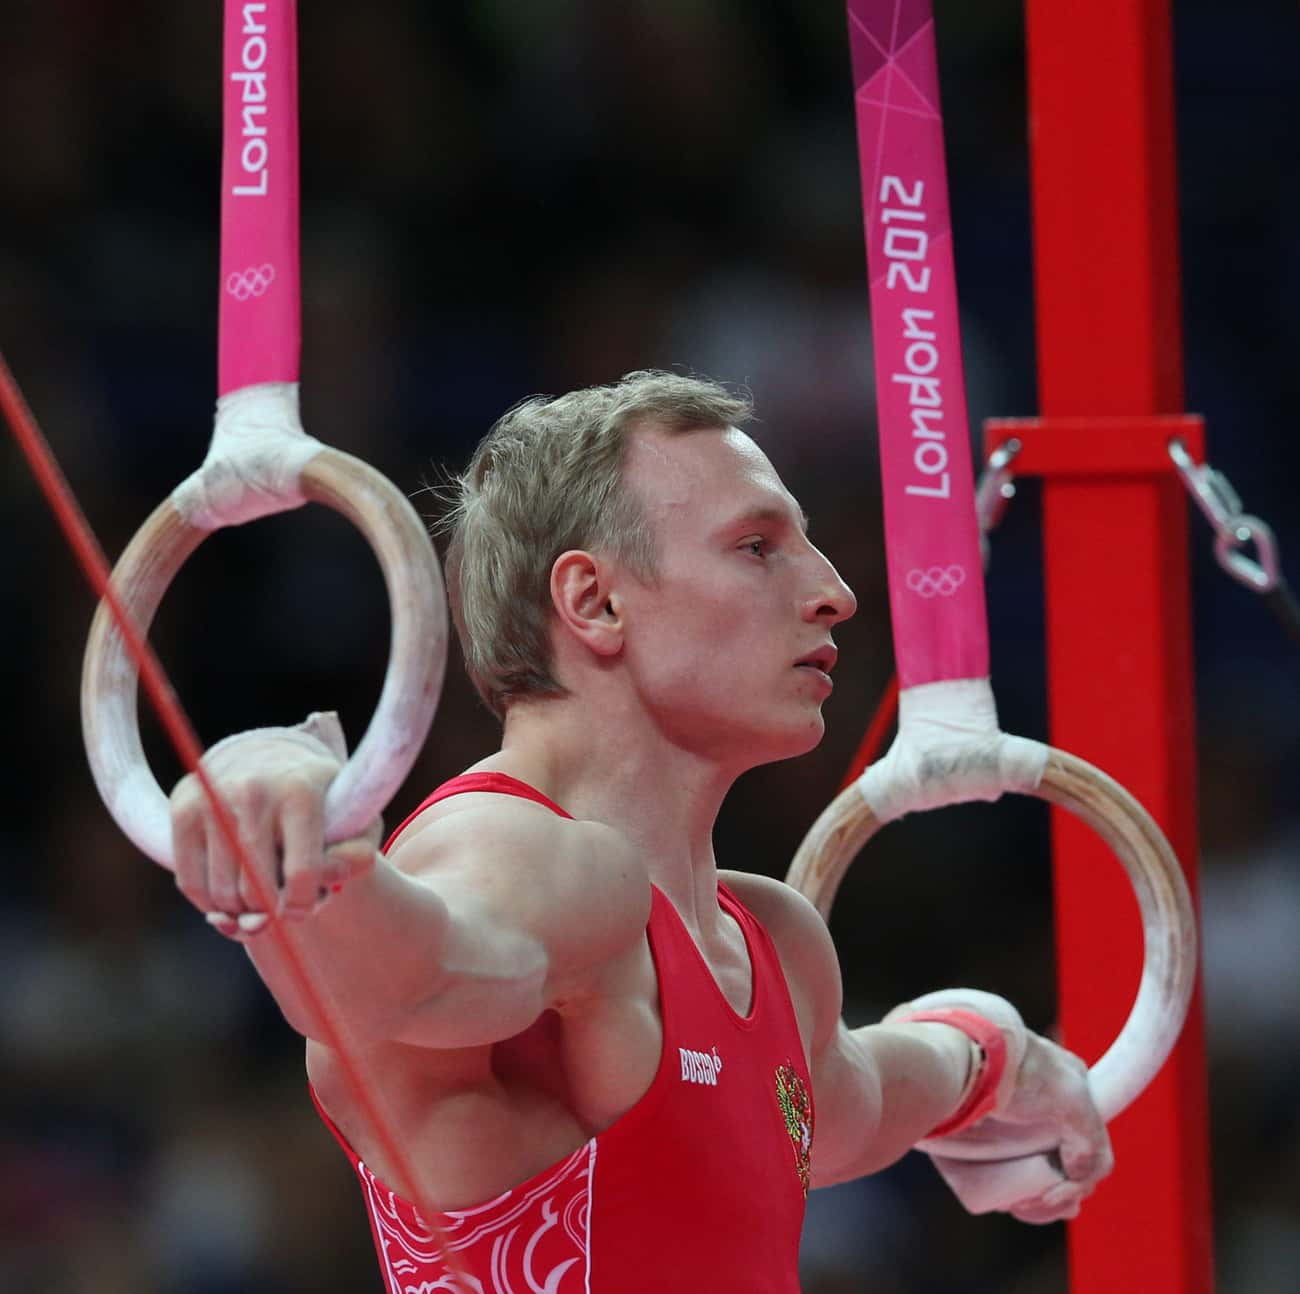 Aleksandr Balandin is listed (or ranked) 1 on the list Famous Gymnasts from Russia